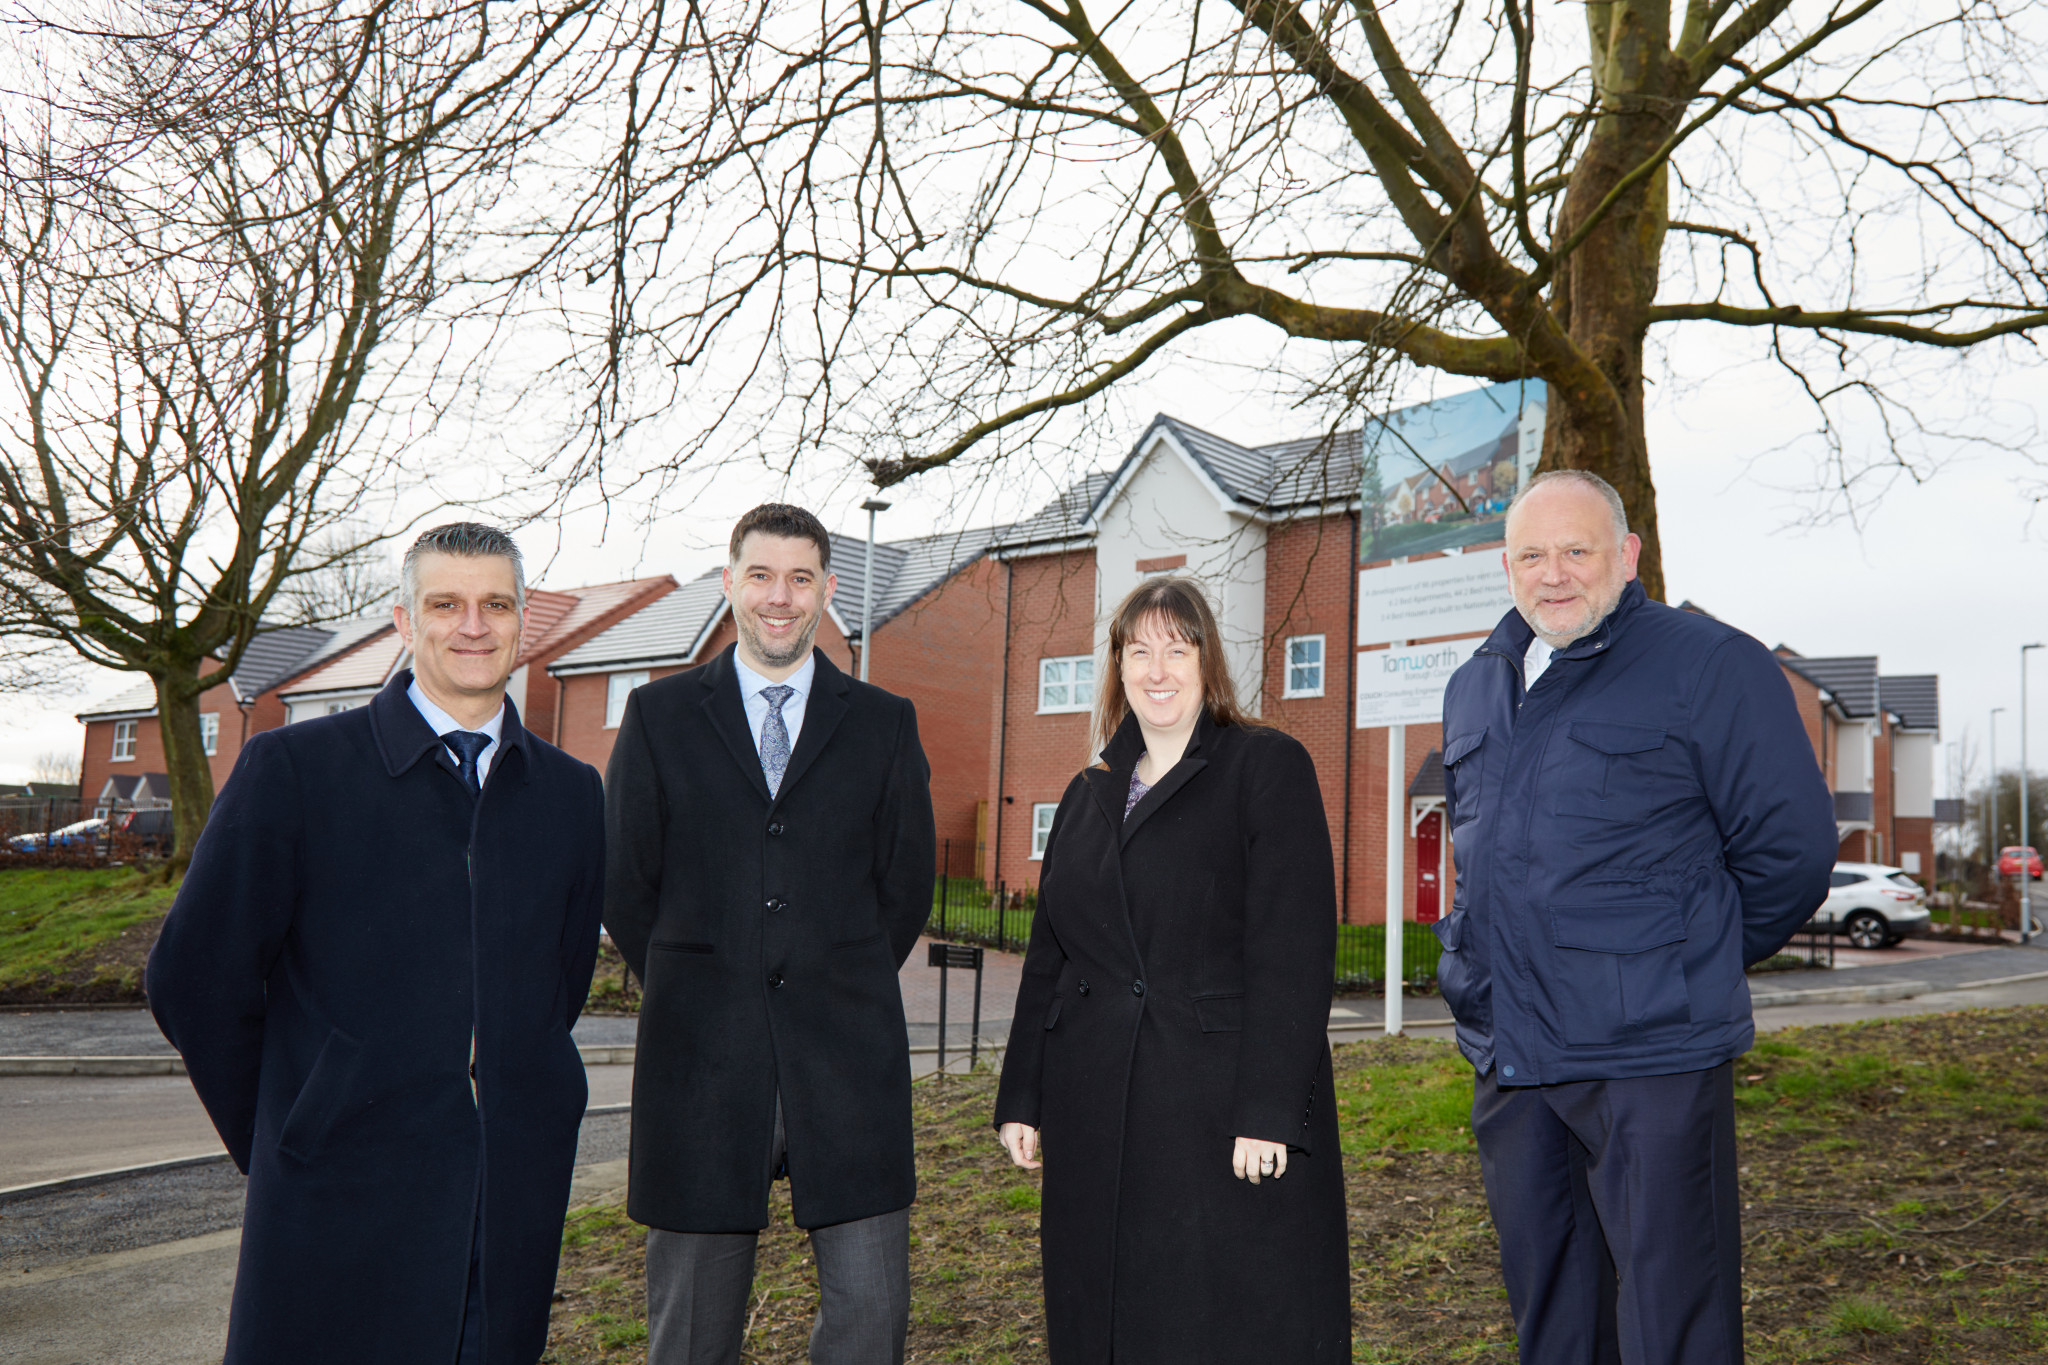 ENGIE awarded 10-year maintenance and repairs contract with Tamworth Borough Council